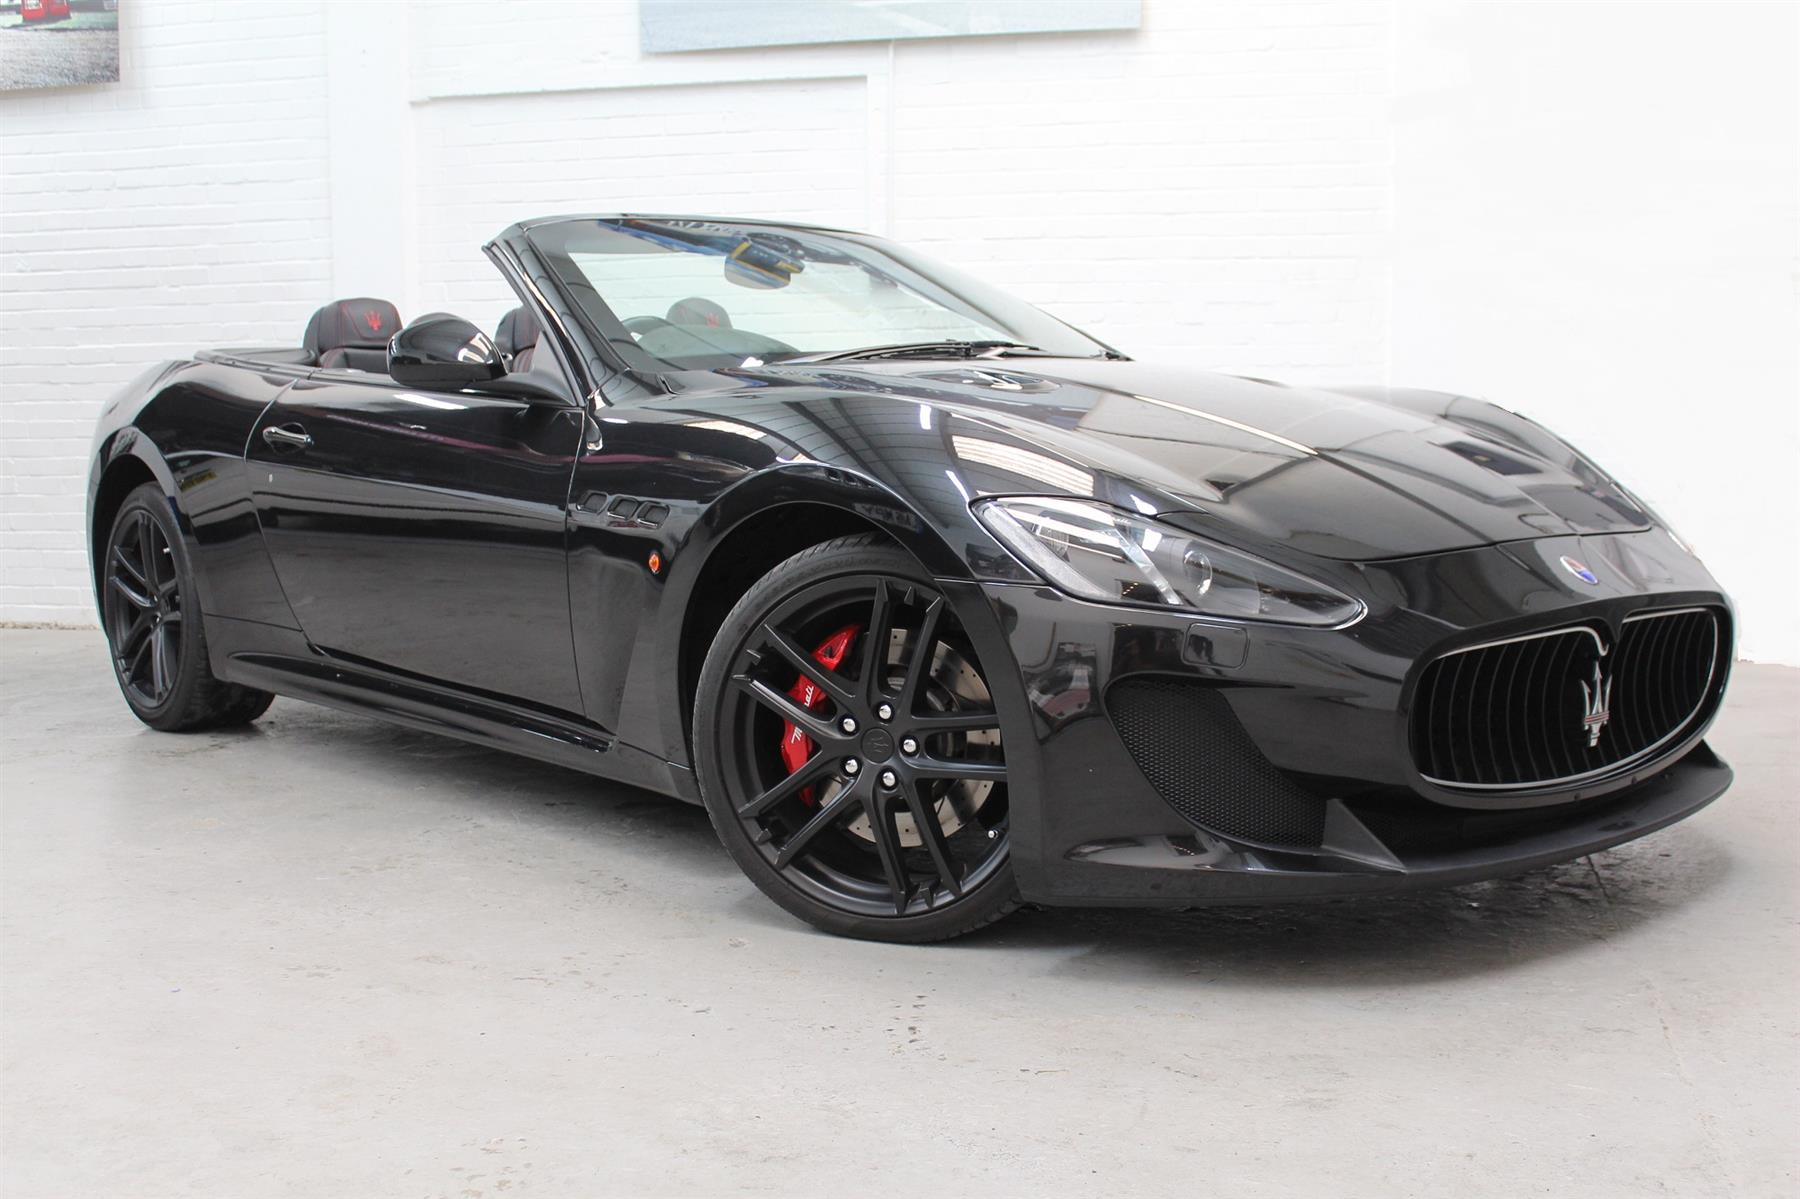 2013 13 Maserati Granturismo Grancabrio Mc Deranged Vehicles